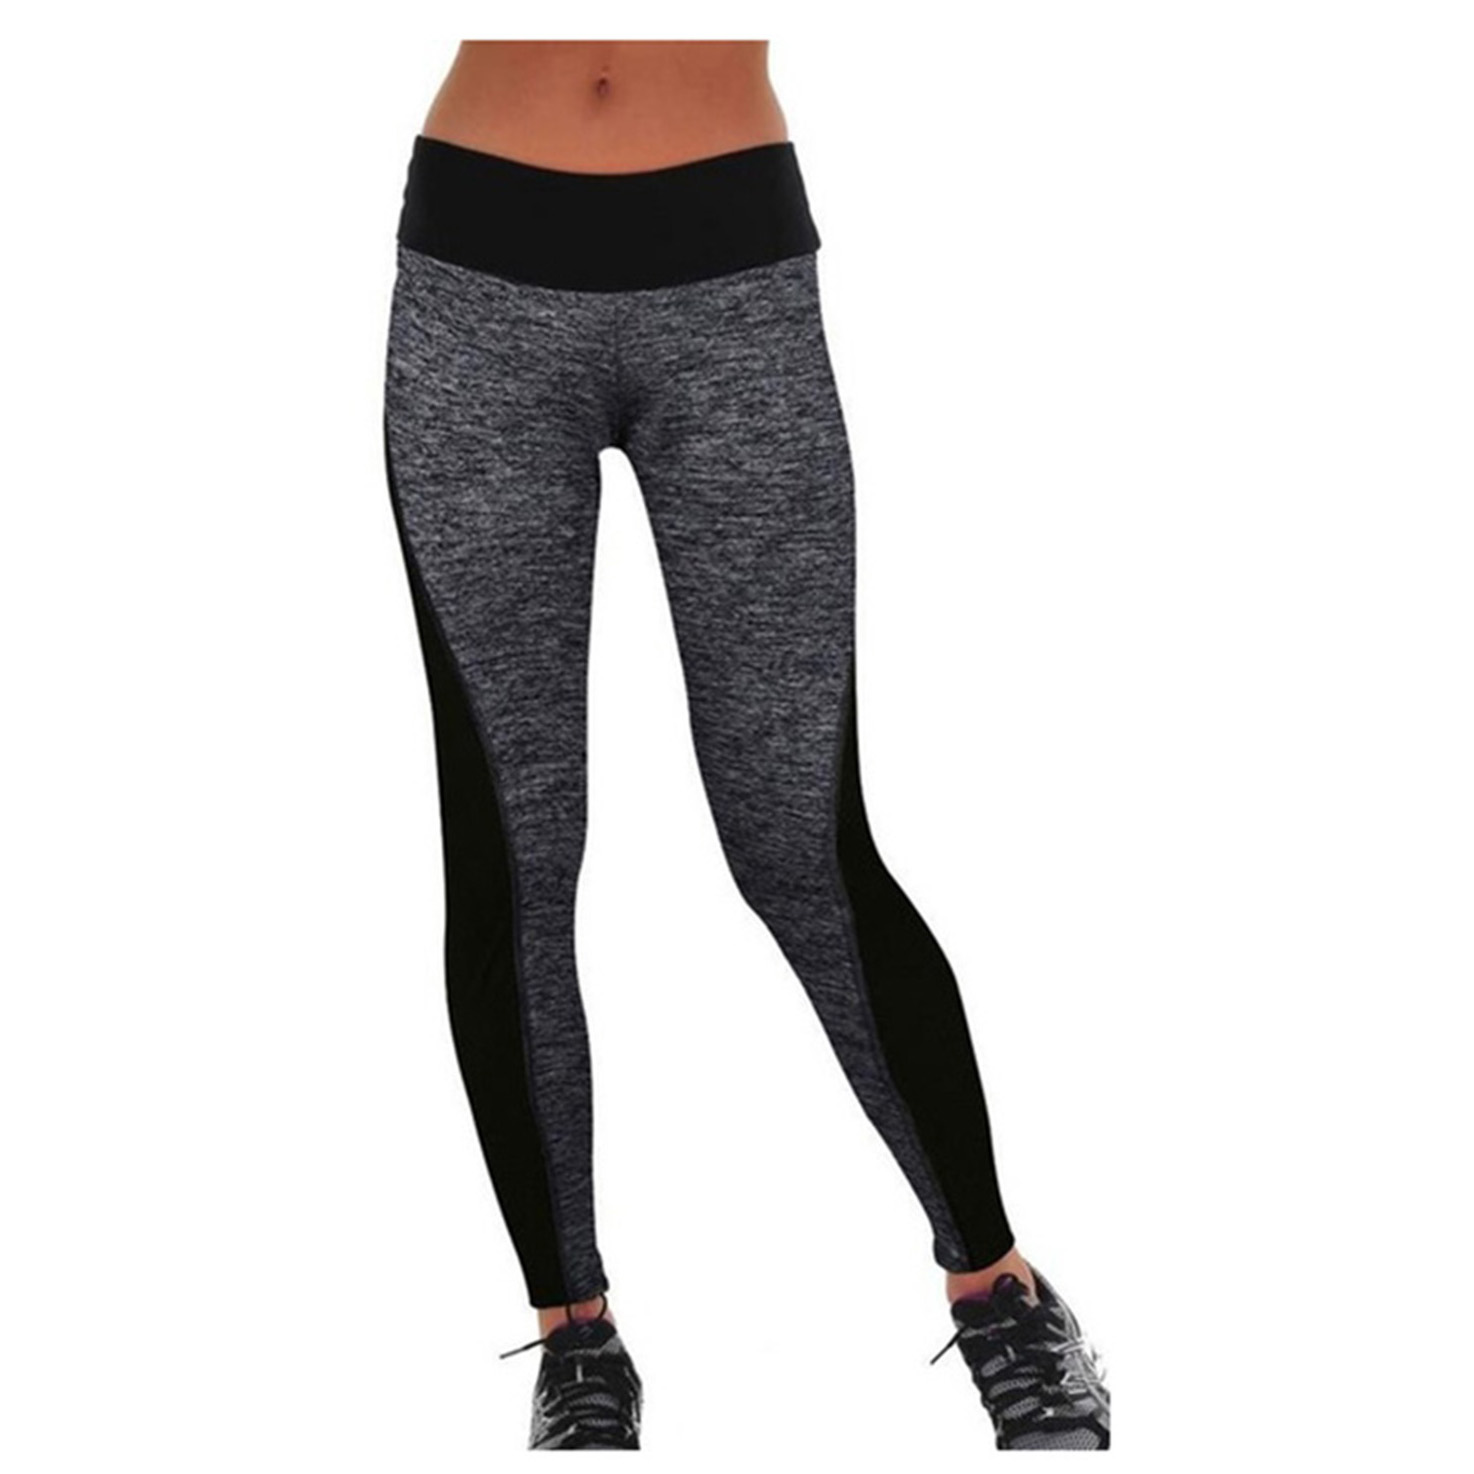 Newest-Women-Grey-And-Black-Paneled-Soft-Plus-Slimming-Pants-Leggings-For-Running-Yoga-Sport.jpg (1474×1474)